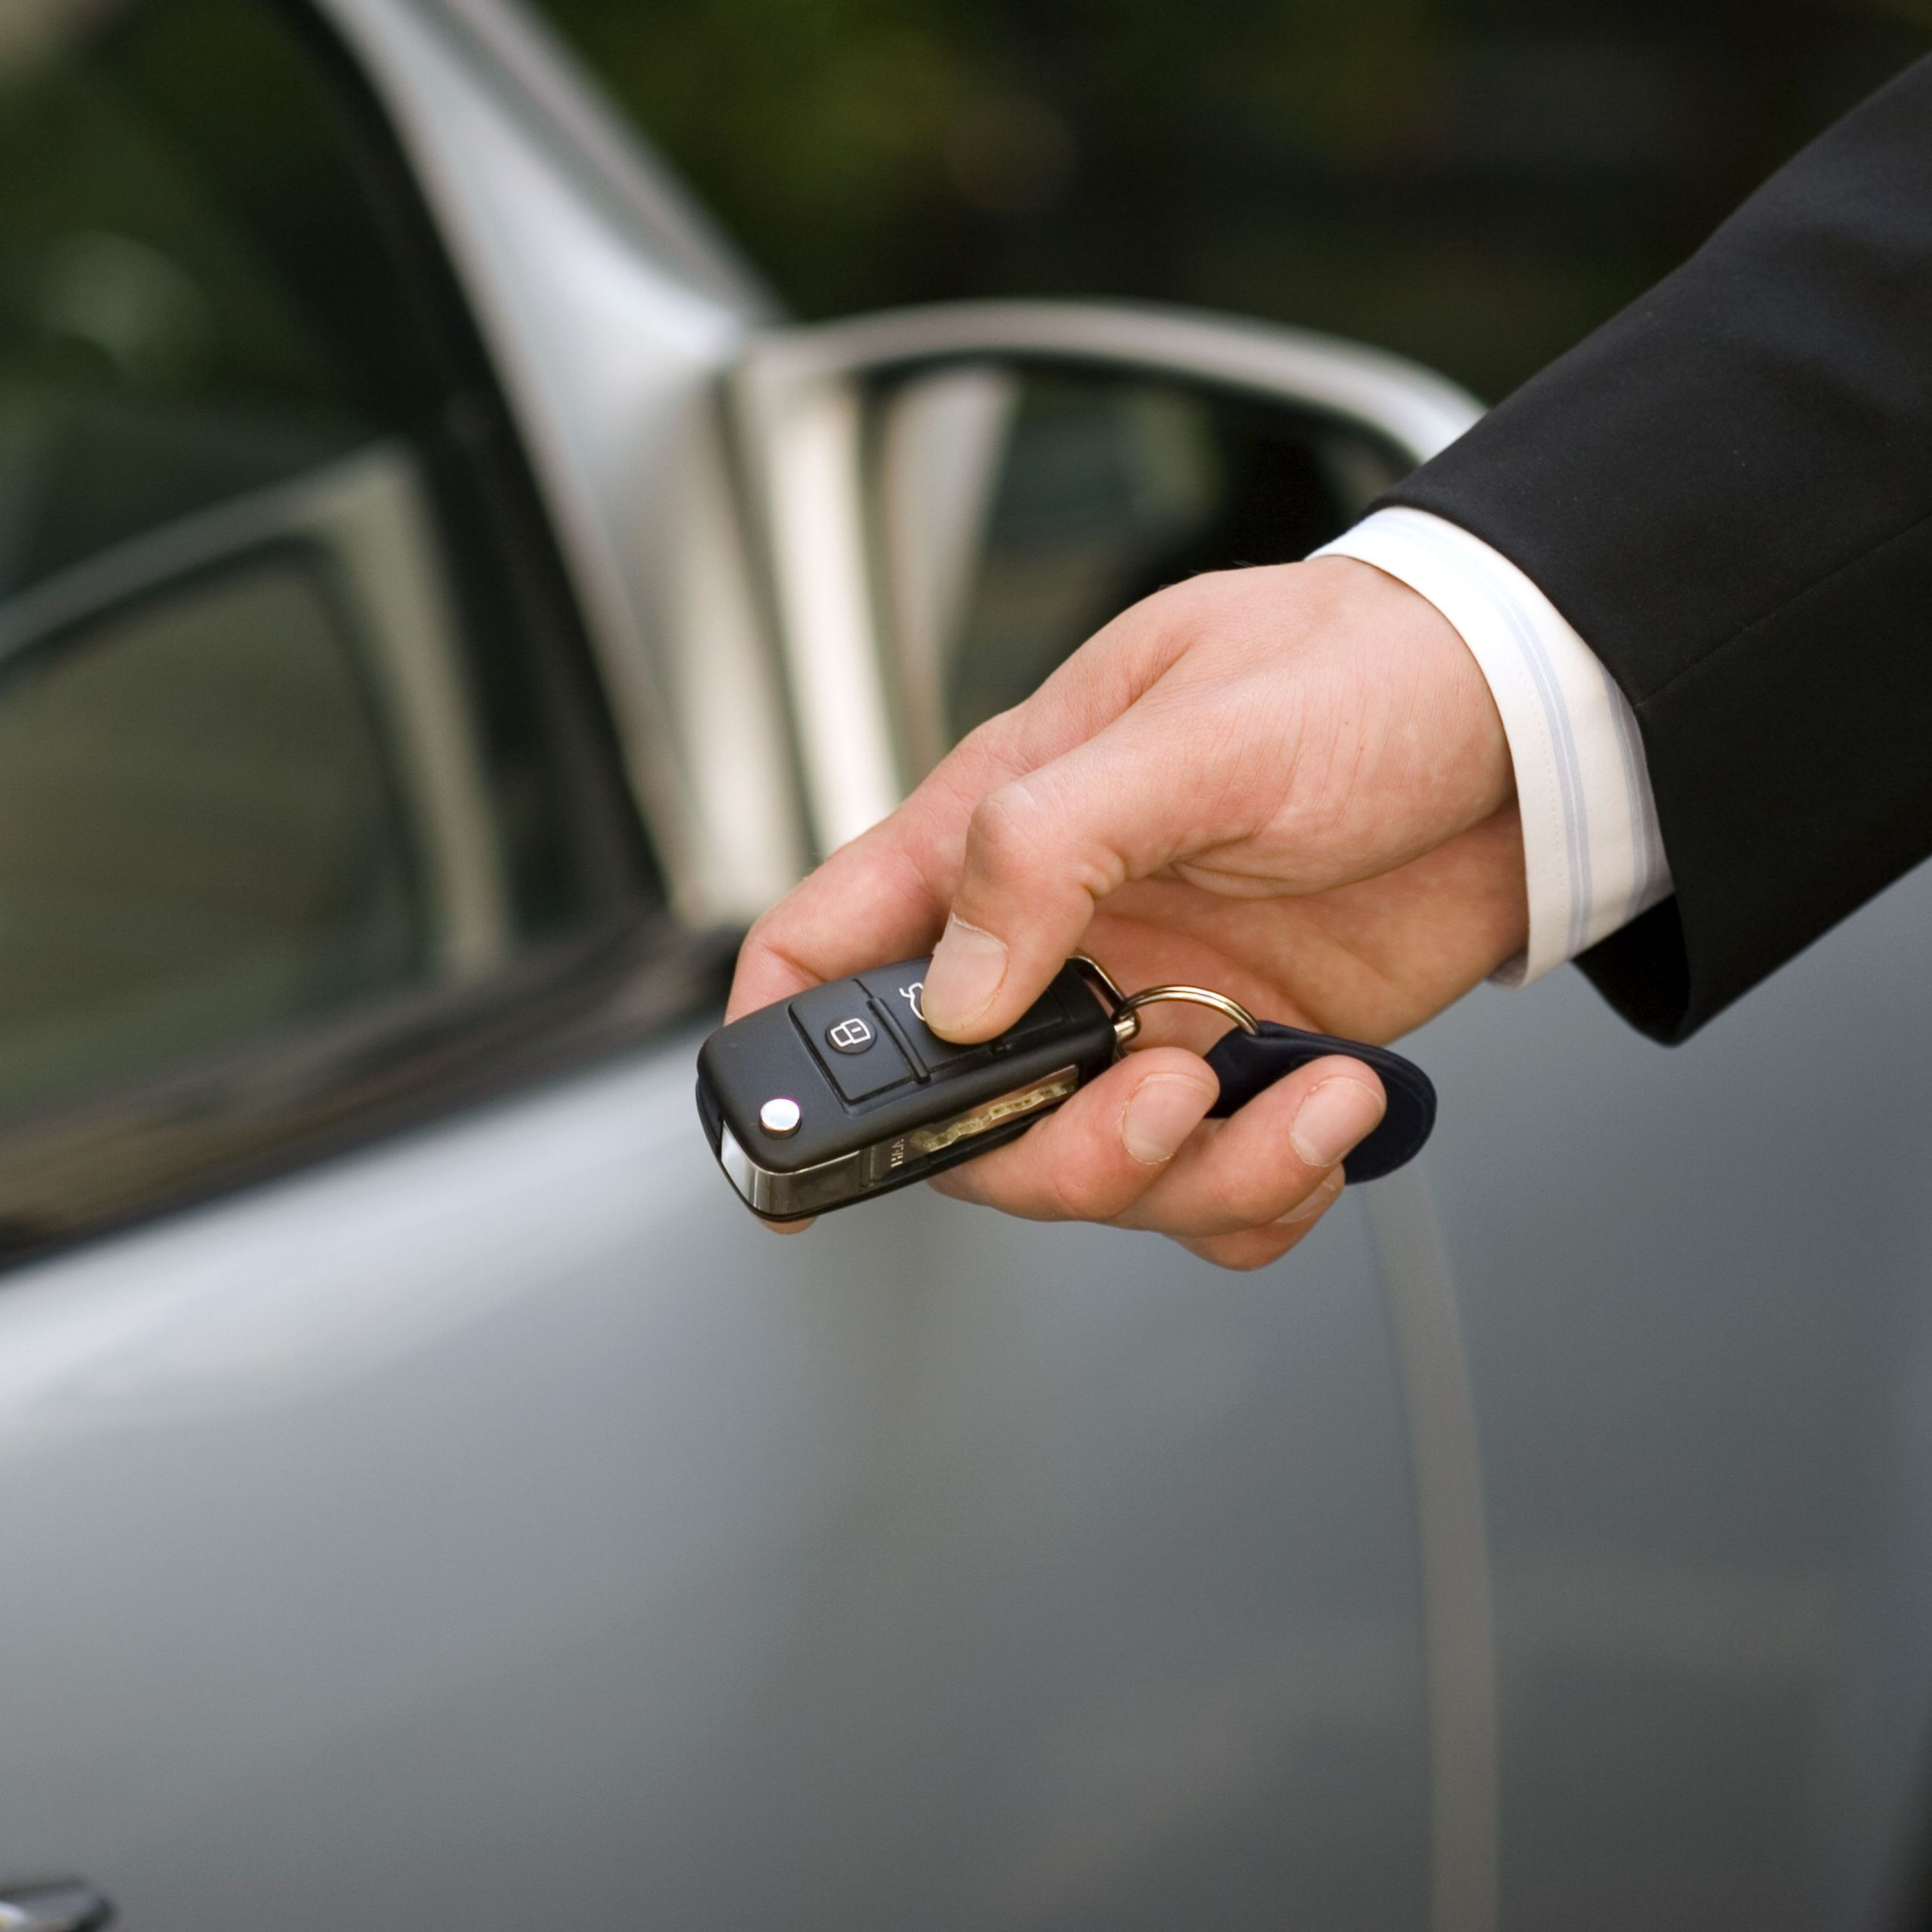 Used Cars for Sale Near Me Buy Here Pay Here New Best and Worst Months for Deals On New or Used Cars